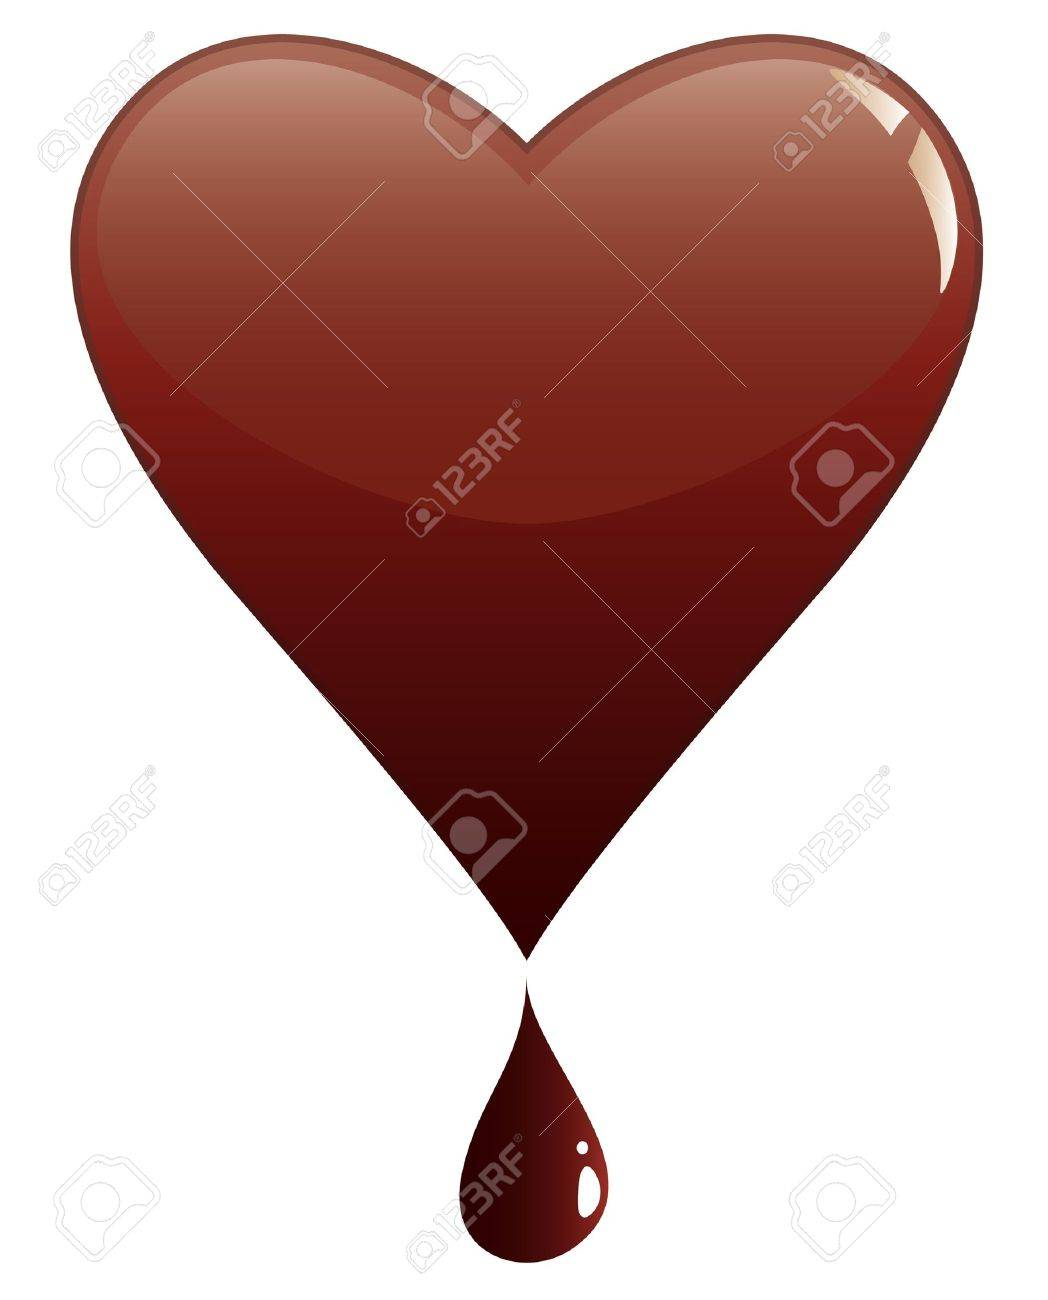 Melting Heart Of Chocolate Royalty Free Cliparts, Vectors, And ...